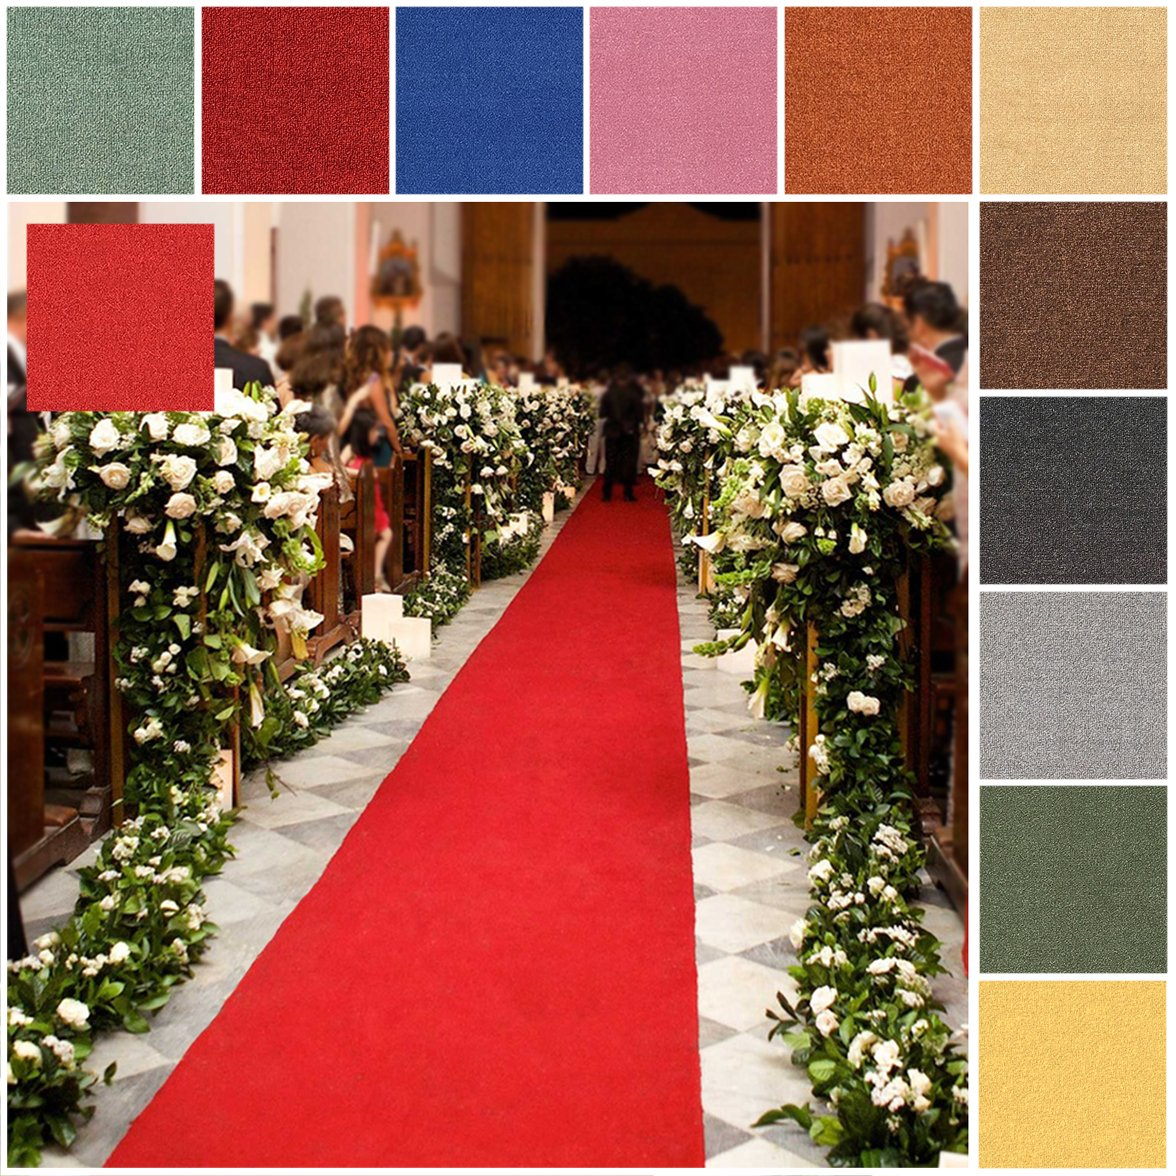 Custom Size RED Rubber Backed Wedding Event Hallway Entry Aisle Stair Runner Rug Carpet 26in X 27ft